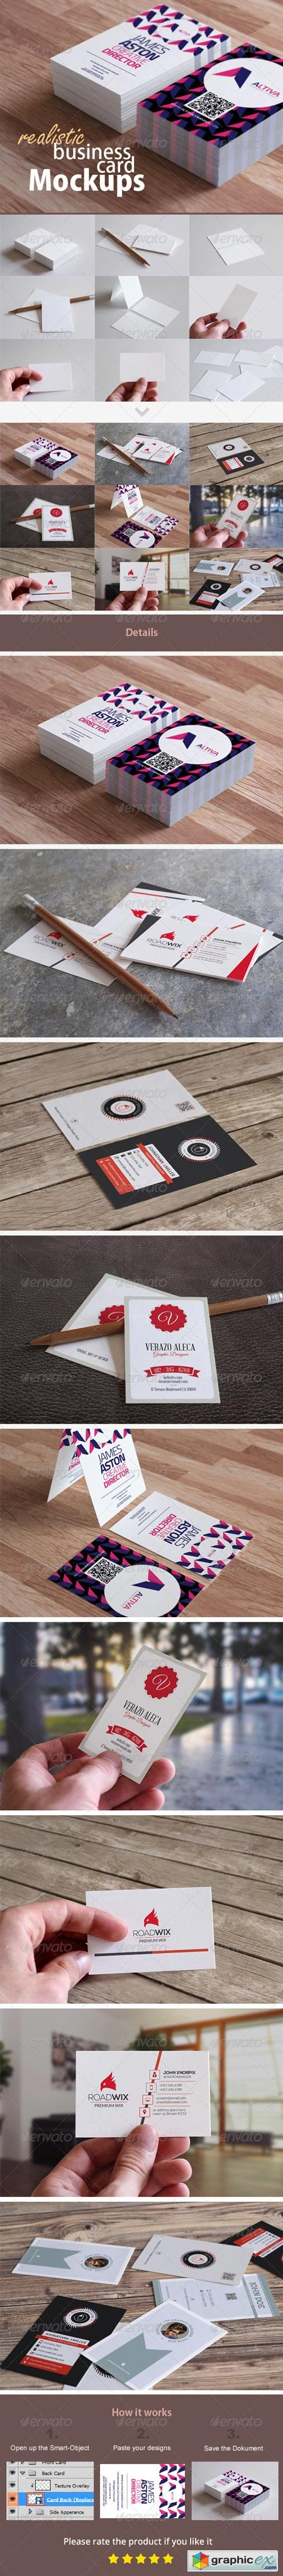 Realistic Business Card Mockups 8687286